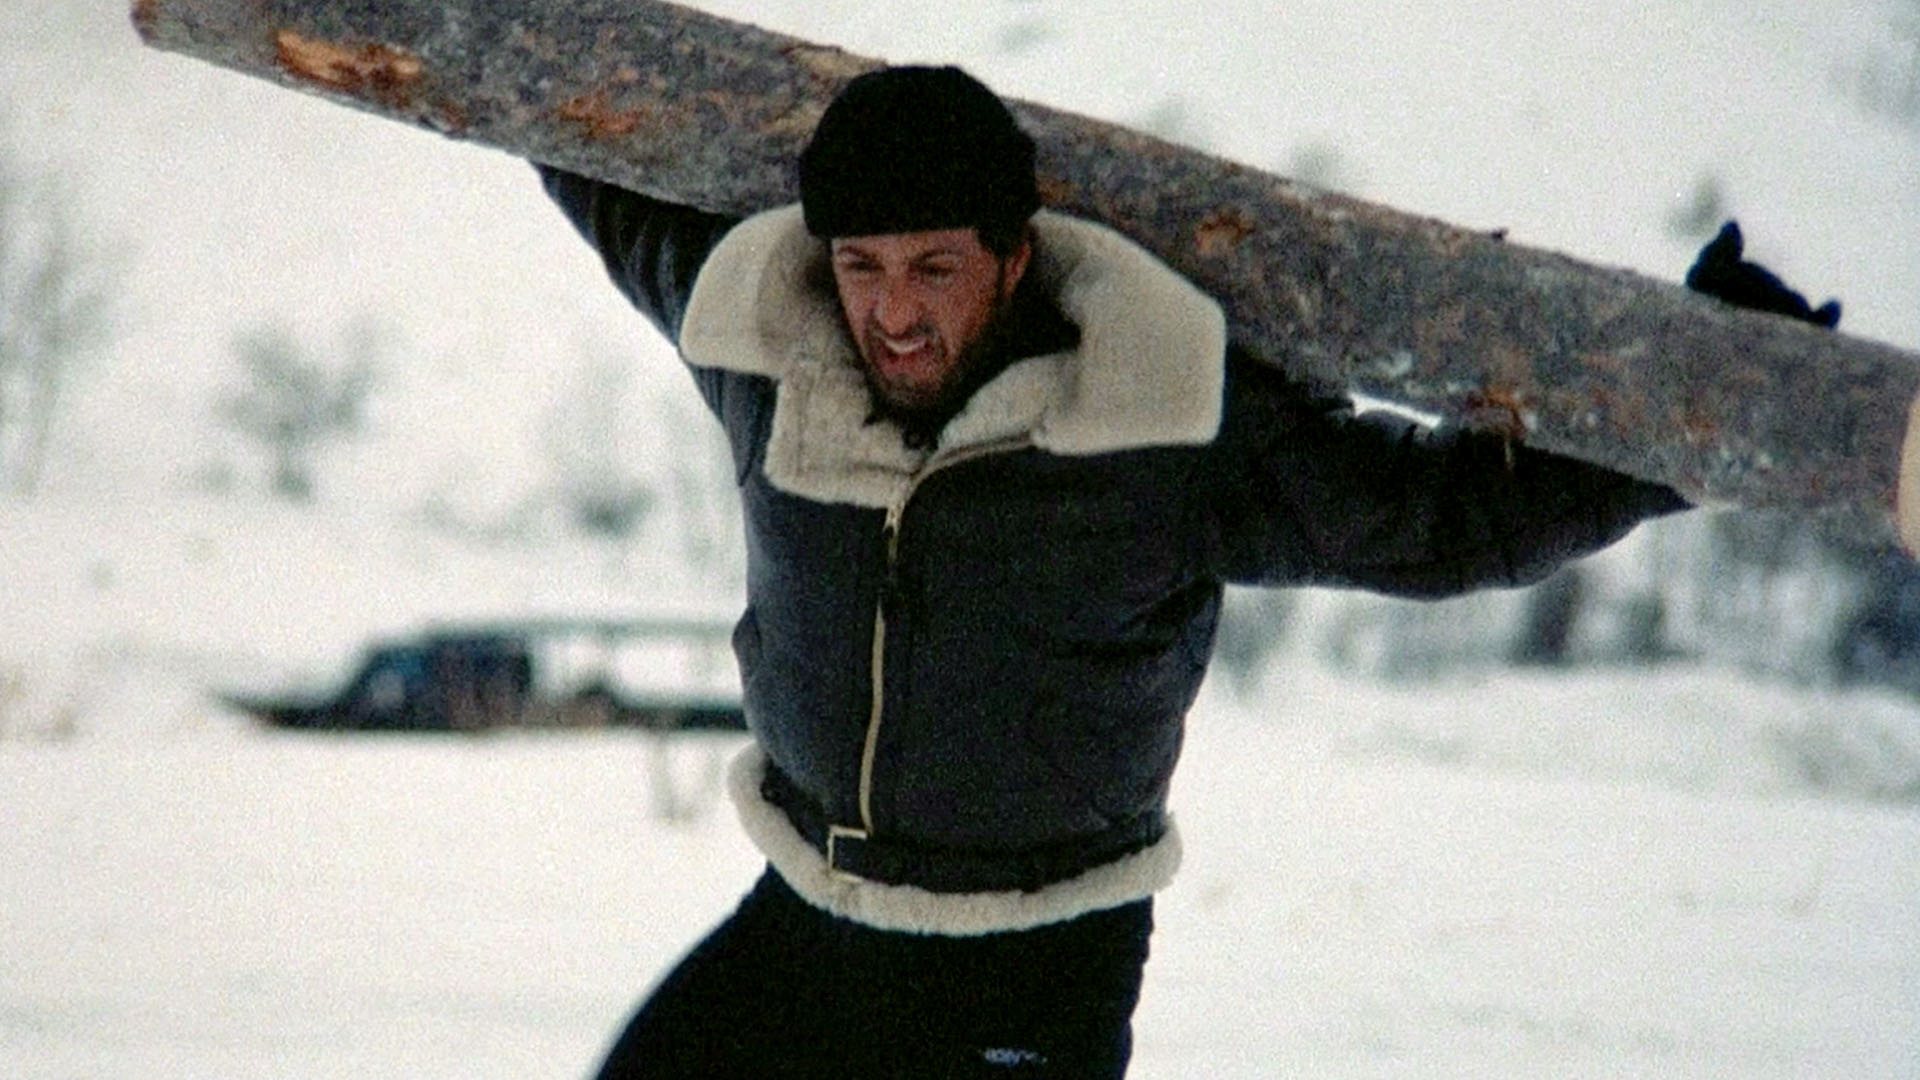 Rocky Balboa trains in the winter by carrying a log in this non-traditional Christmas movie.